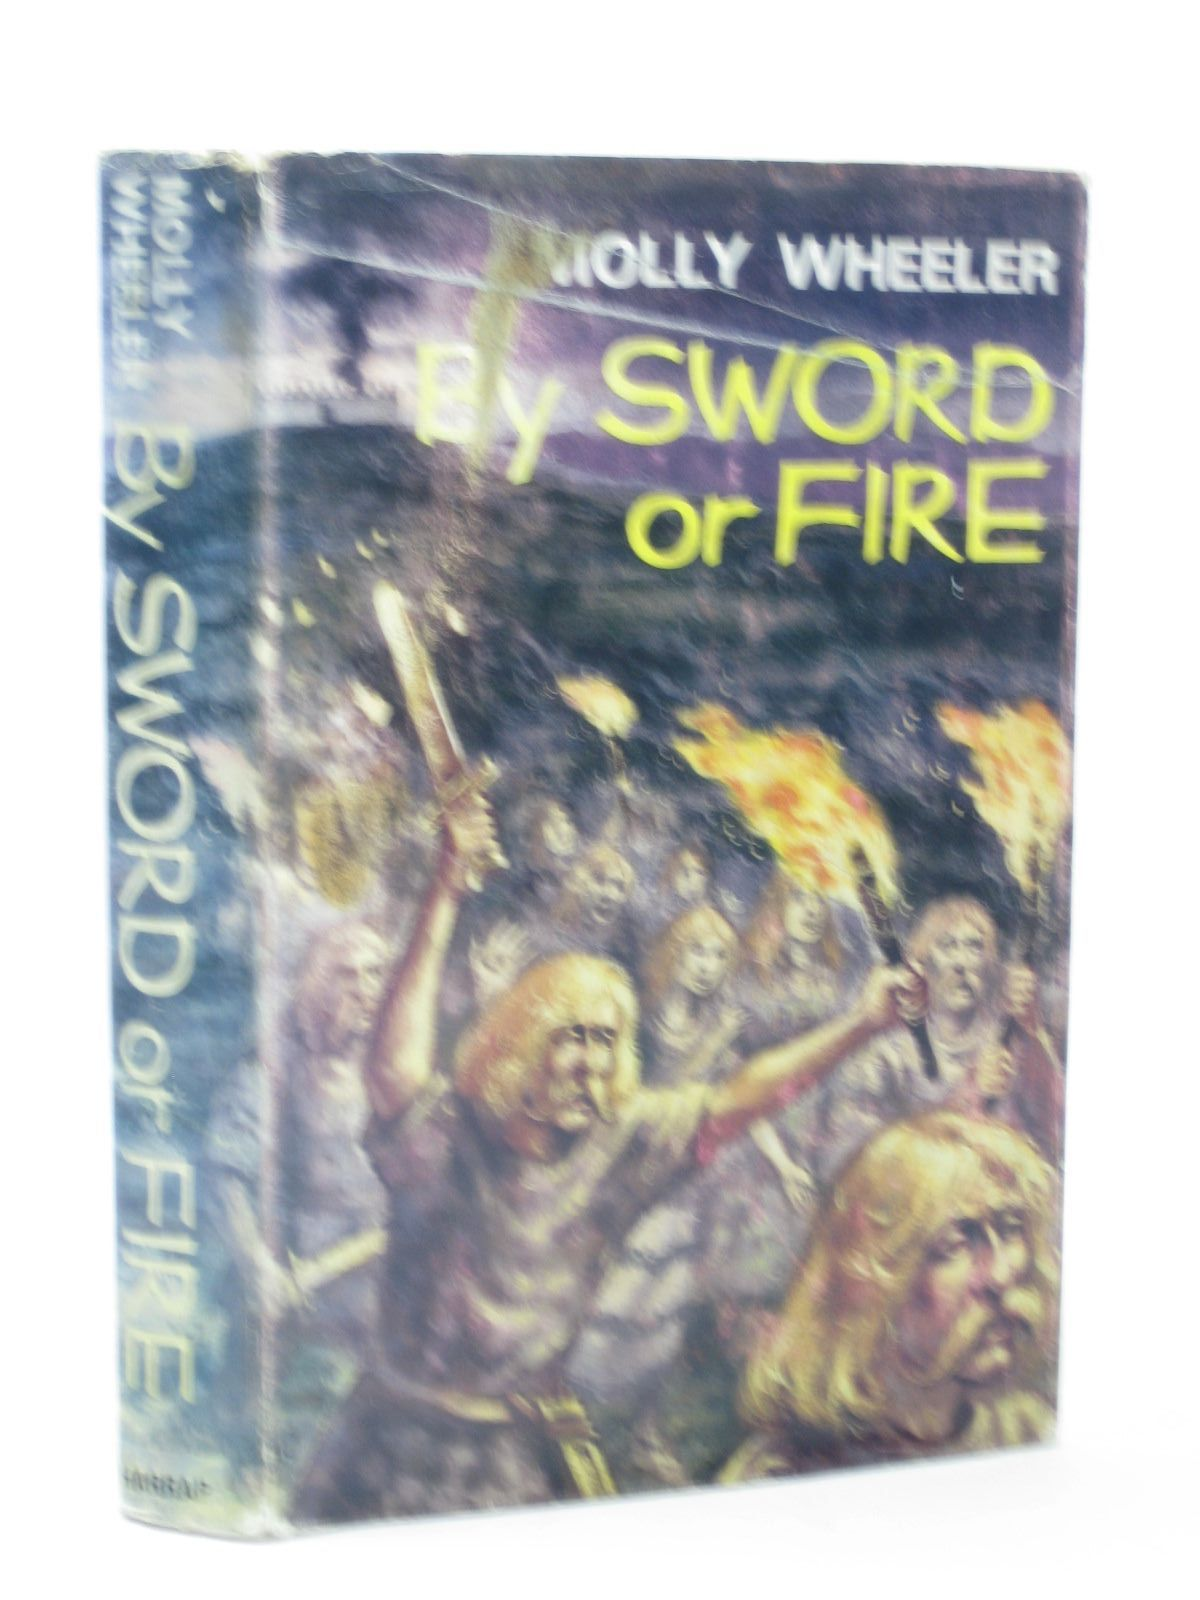 Photo of BY SWORD OR FIRE written by Wheeler, Molly illustrated by Taylor, Tom published by George G. Harrap & Co. Ltd. (STOCK CODE: 1502217)  for sale by Stella & Rose's Books